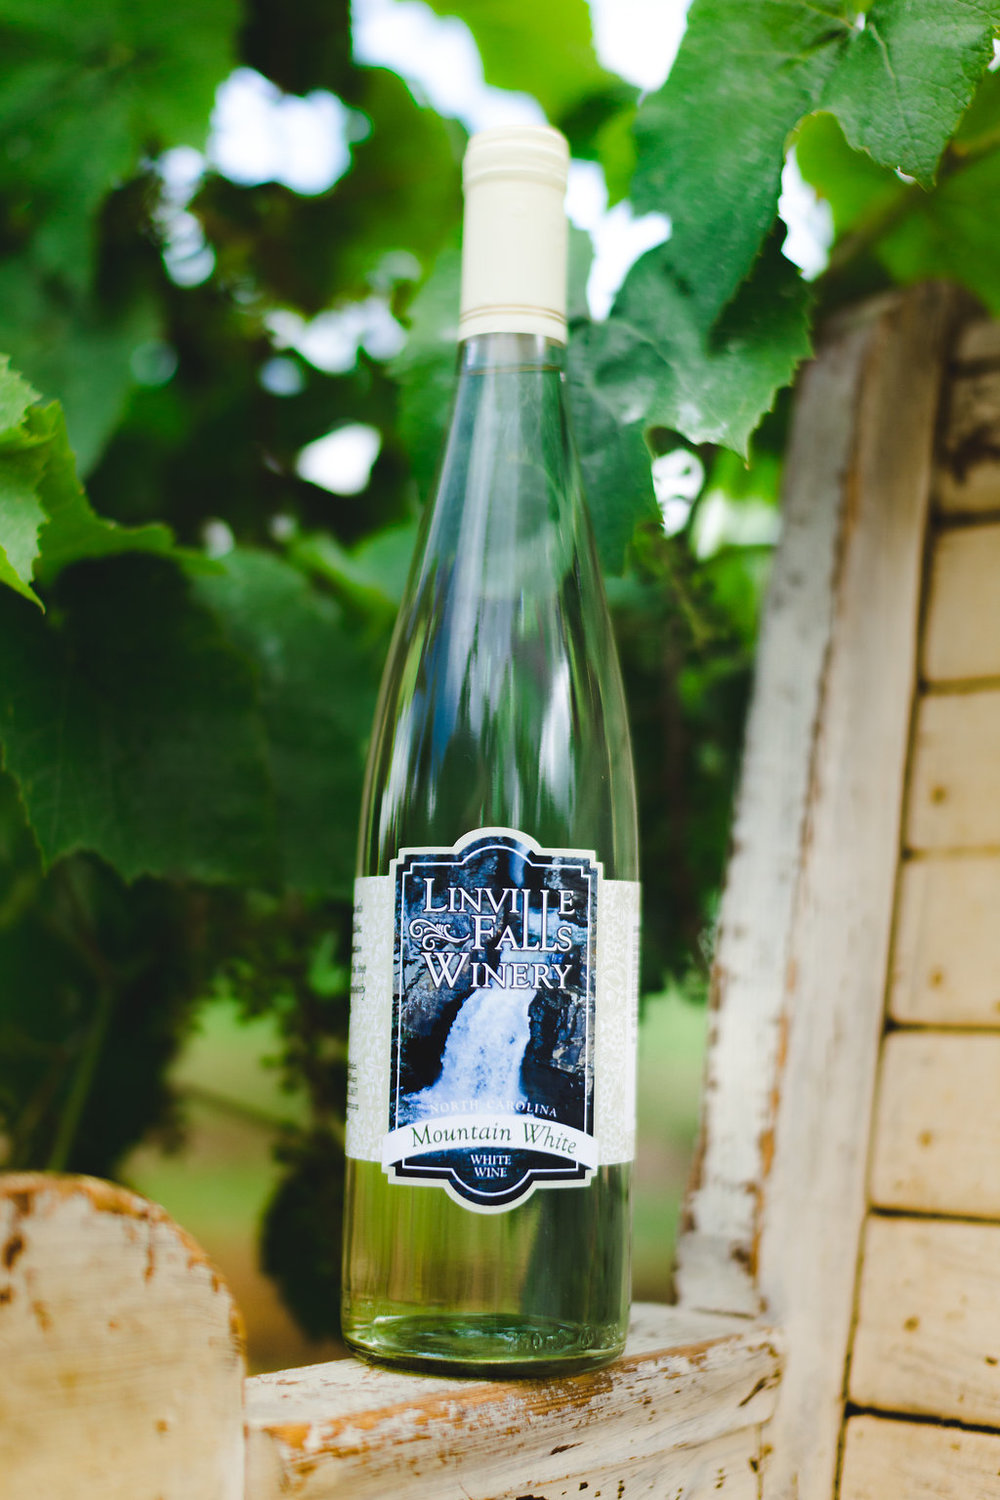 Mountain White - When harvest comes around for our estate grown Seyval Blanc,you can't resist the urge to pluck a few of these sweet, flavorful grapes straight to your mouth!Mountain White retains the bright, fresh-picked taste of these grapes with notes of peach and delightful tropical flavor.